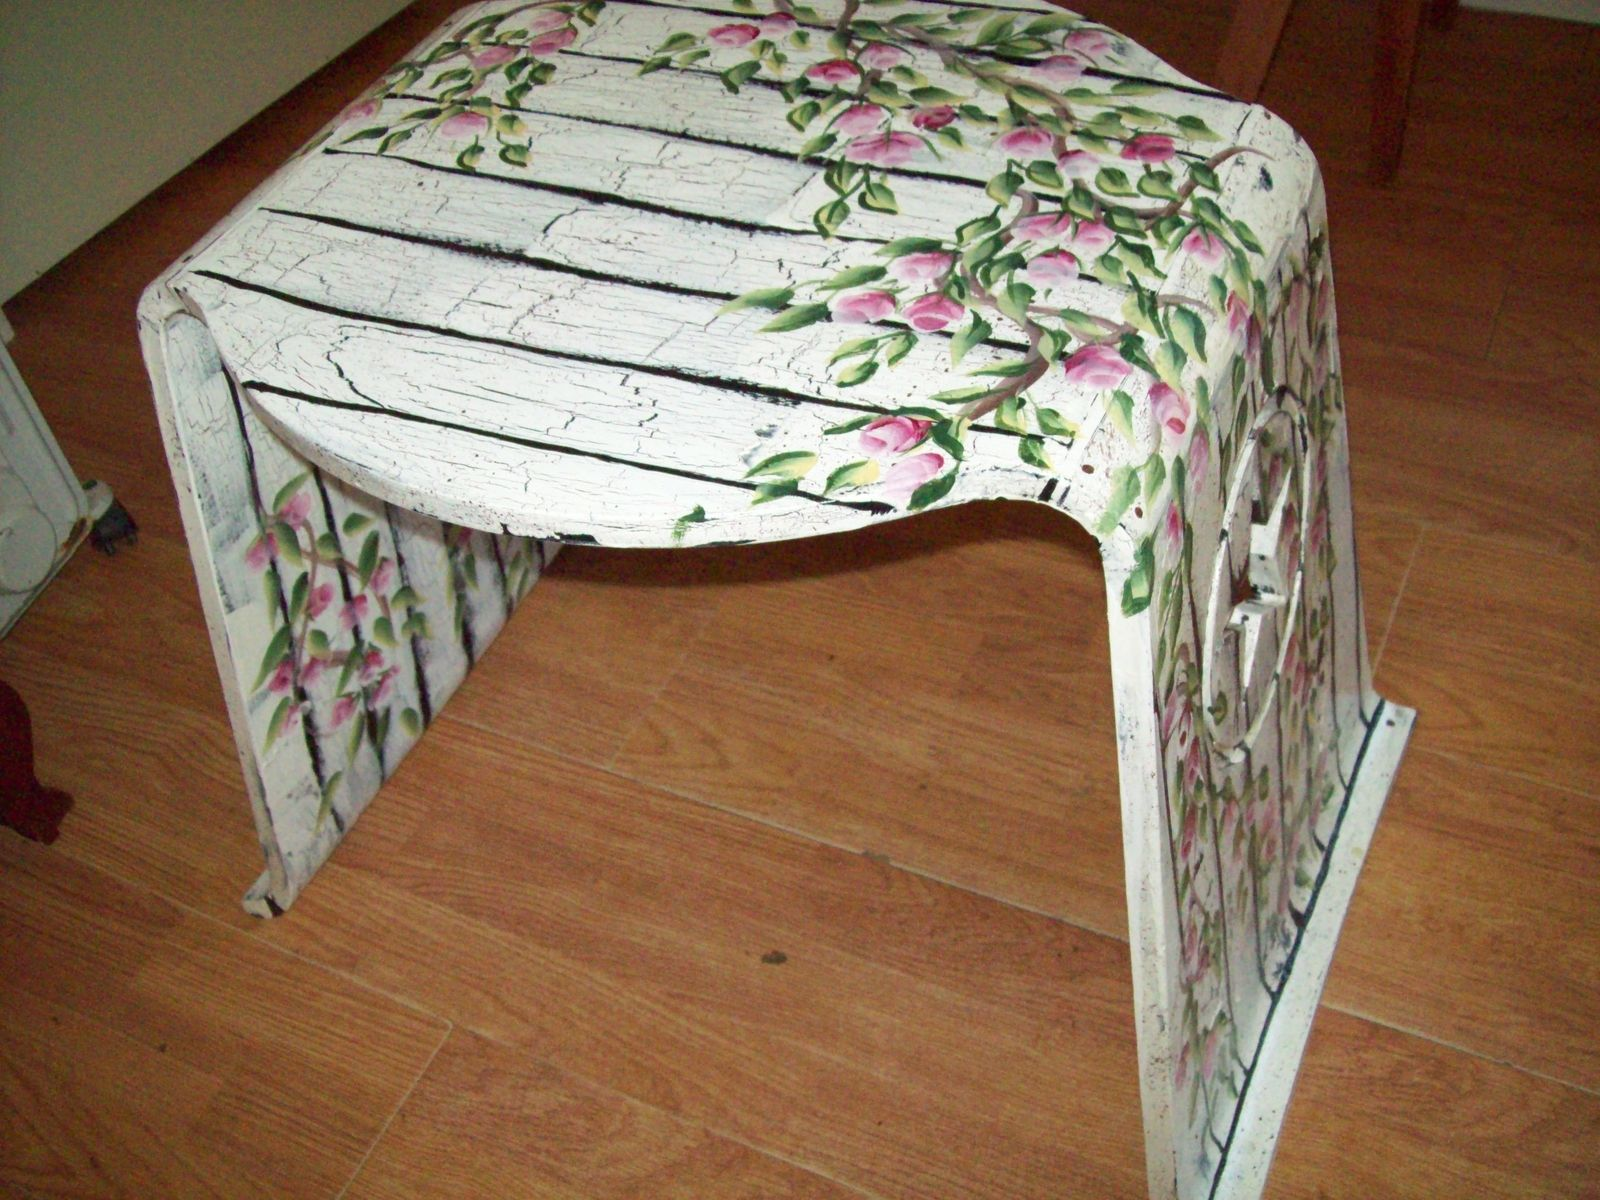 Hand Crafted Wood Table Bench Painted White Wood With Rosebuds By I Paint Cool Stuff